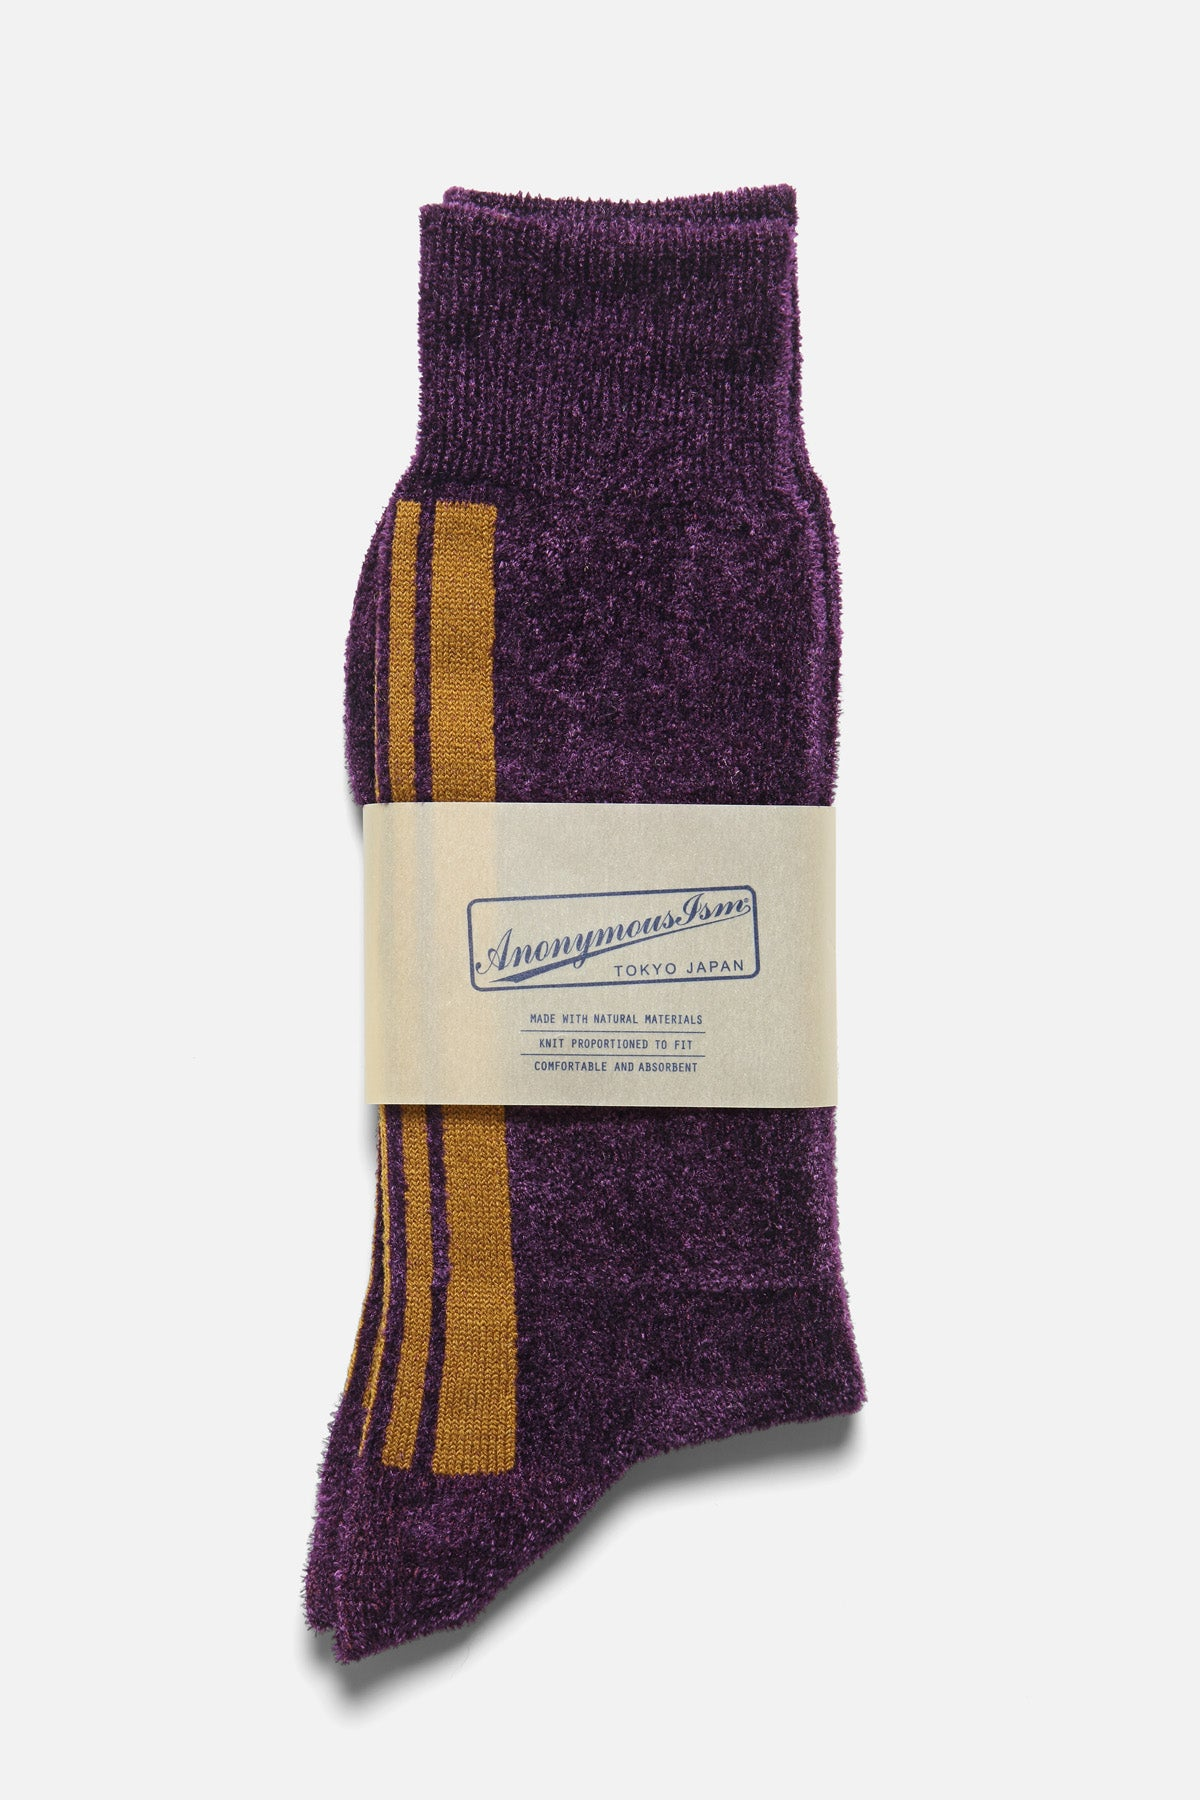 ANONYMOUS ISM - VELVET STRIPE CREW IN PURPLE - Fortune Goods